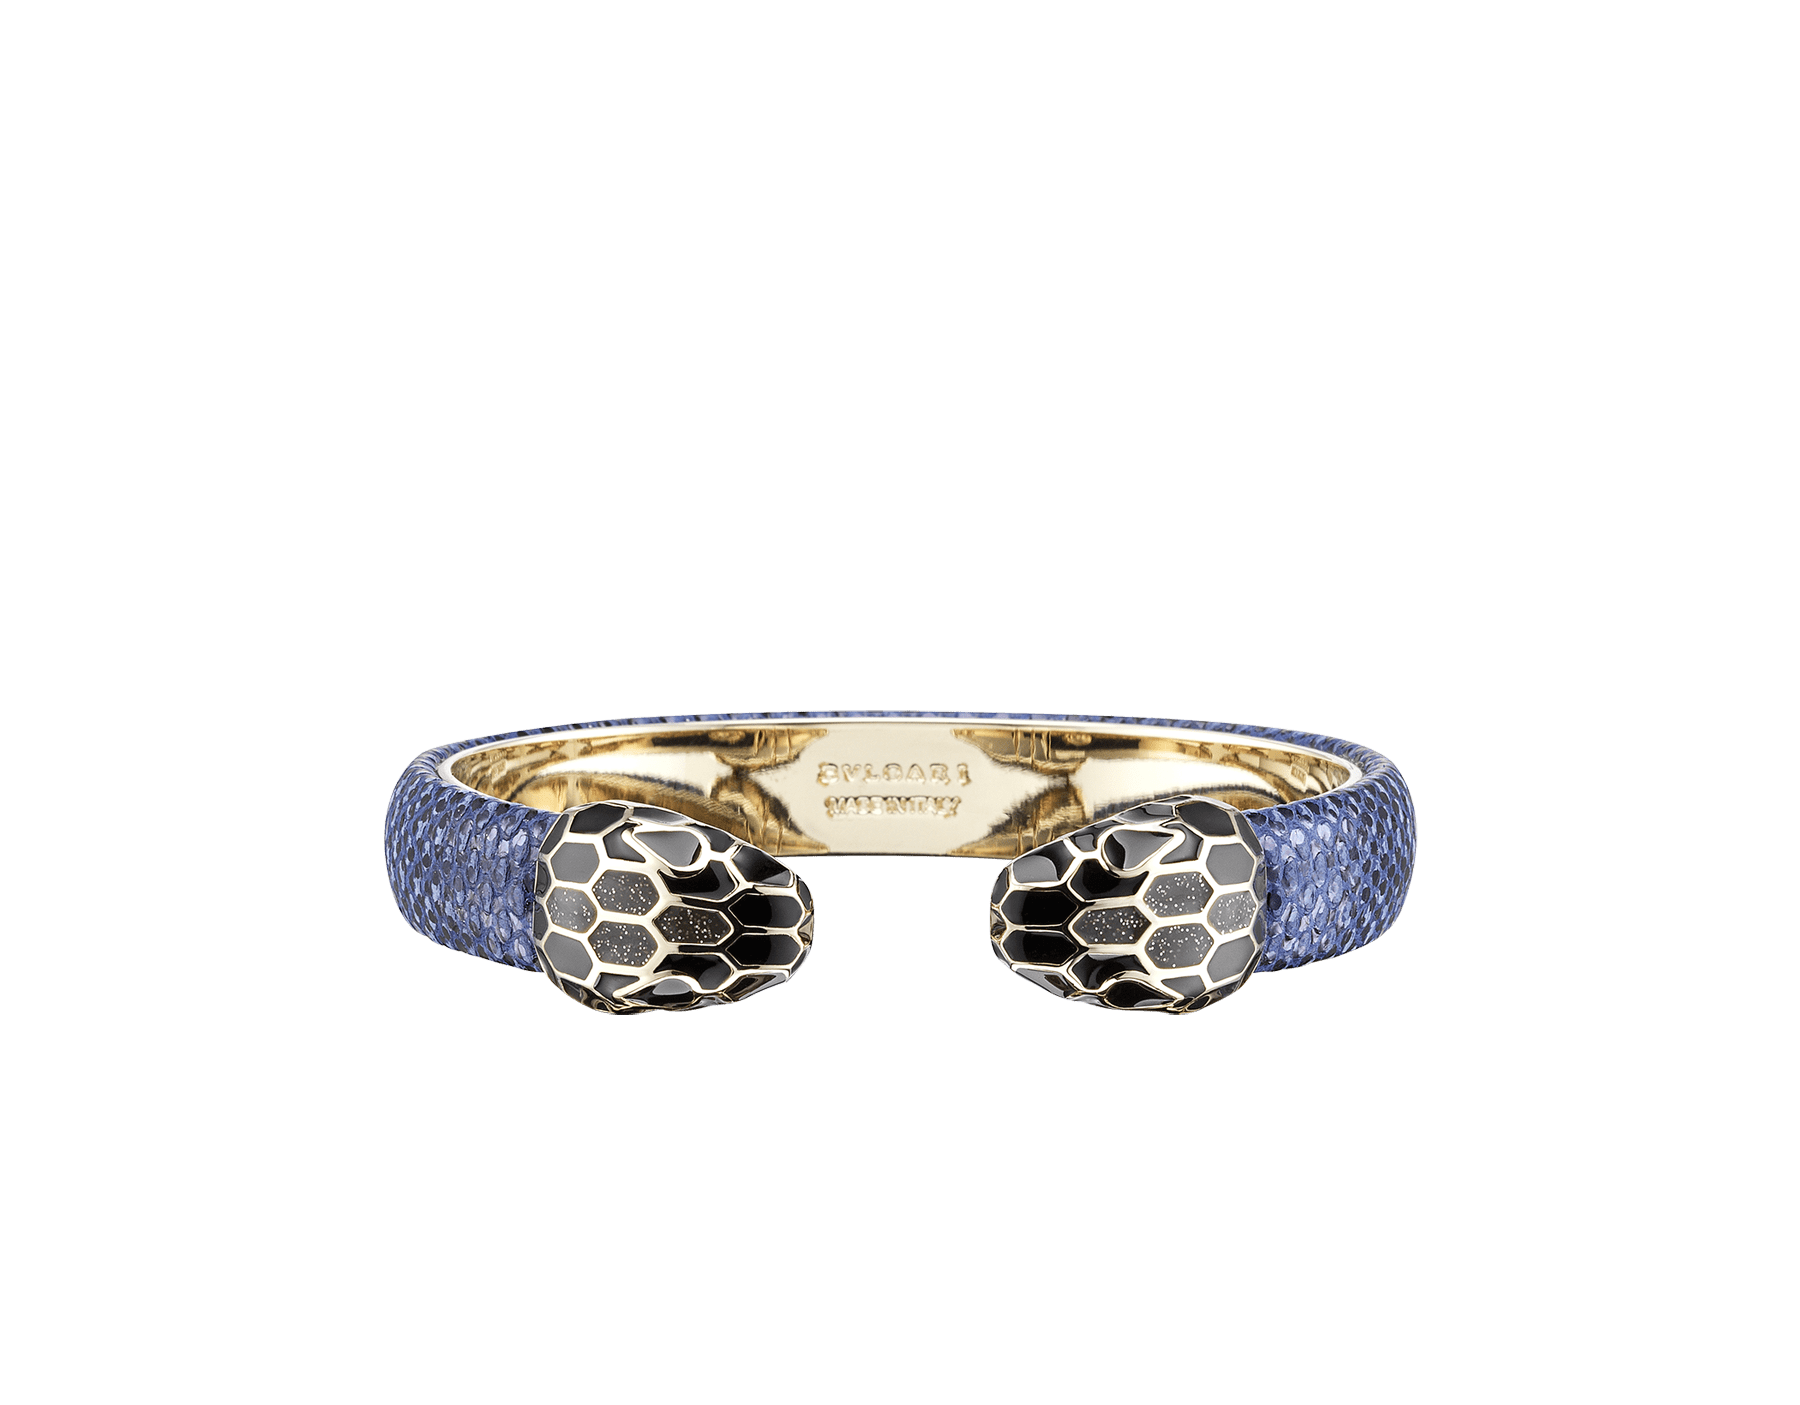 """""""Serpenti Forever"""" bangle in metallic Midnight Sapphire blue karung skin with light gold-plated brass details. Iconic face-to-face snakeheads with black and glittery Hawk's Eye grey enamel and seductive black enamel eyes. SPContr-MK-MidSapph image 1"""